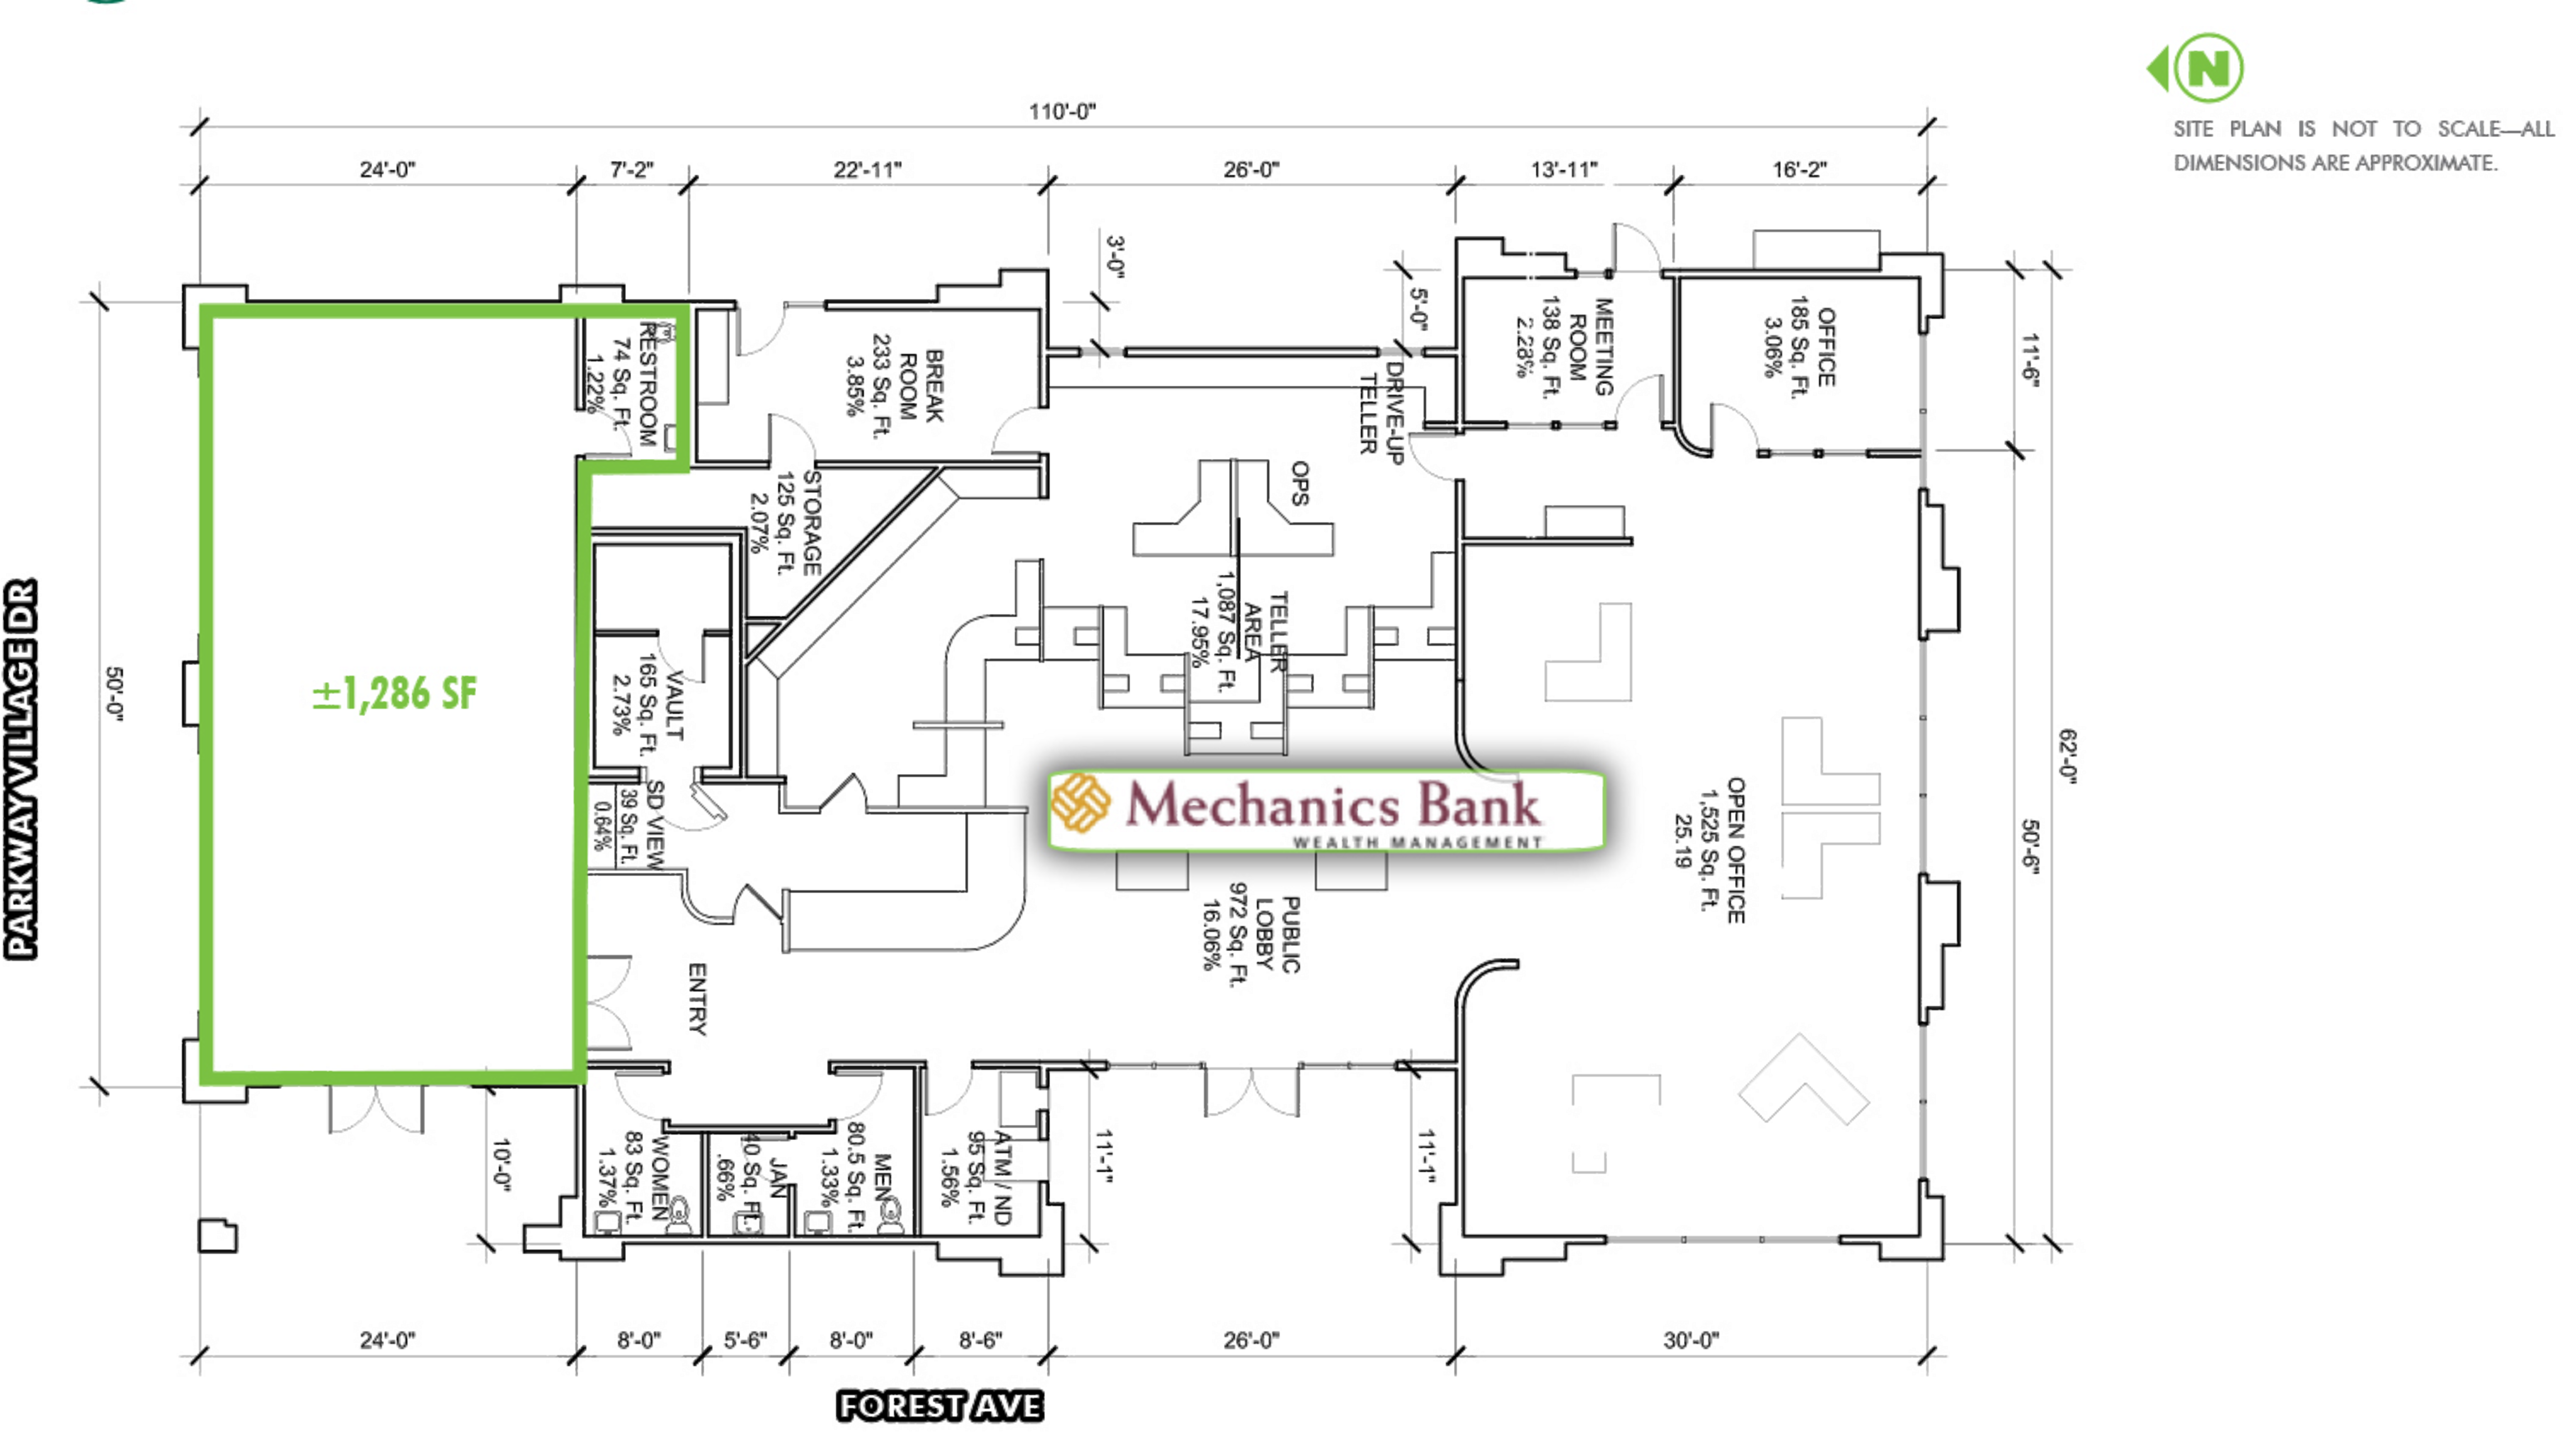 237 W East Ave: site plan